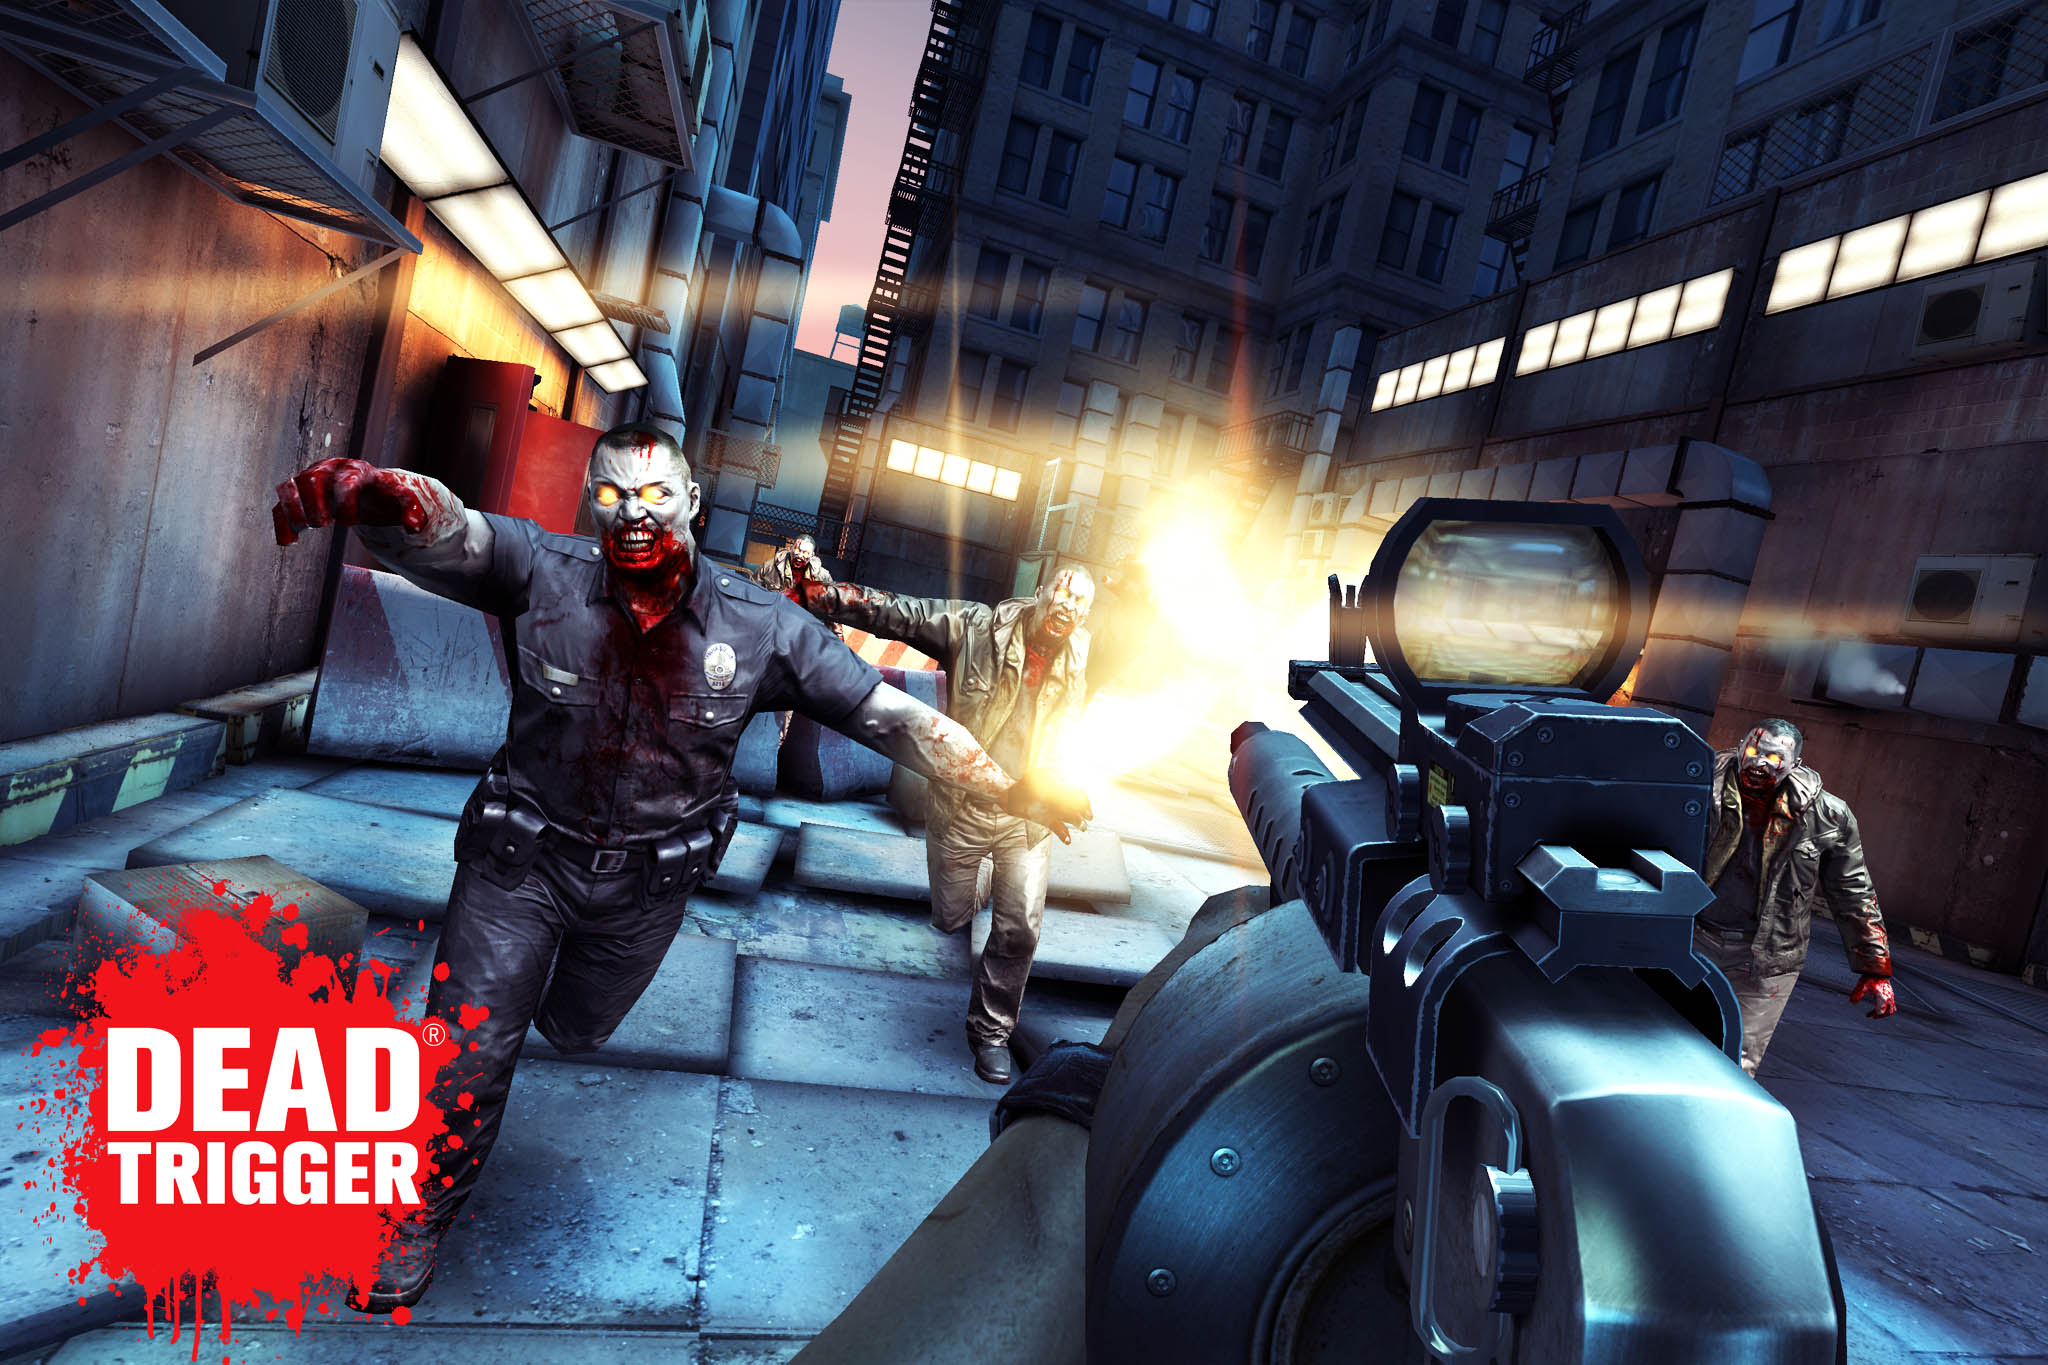 Prepare For Console Quality FPS Zombie Slaughtering In Dead Trigger